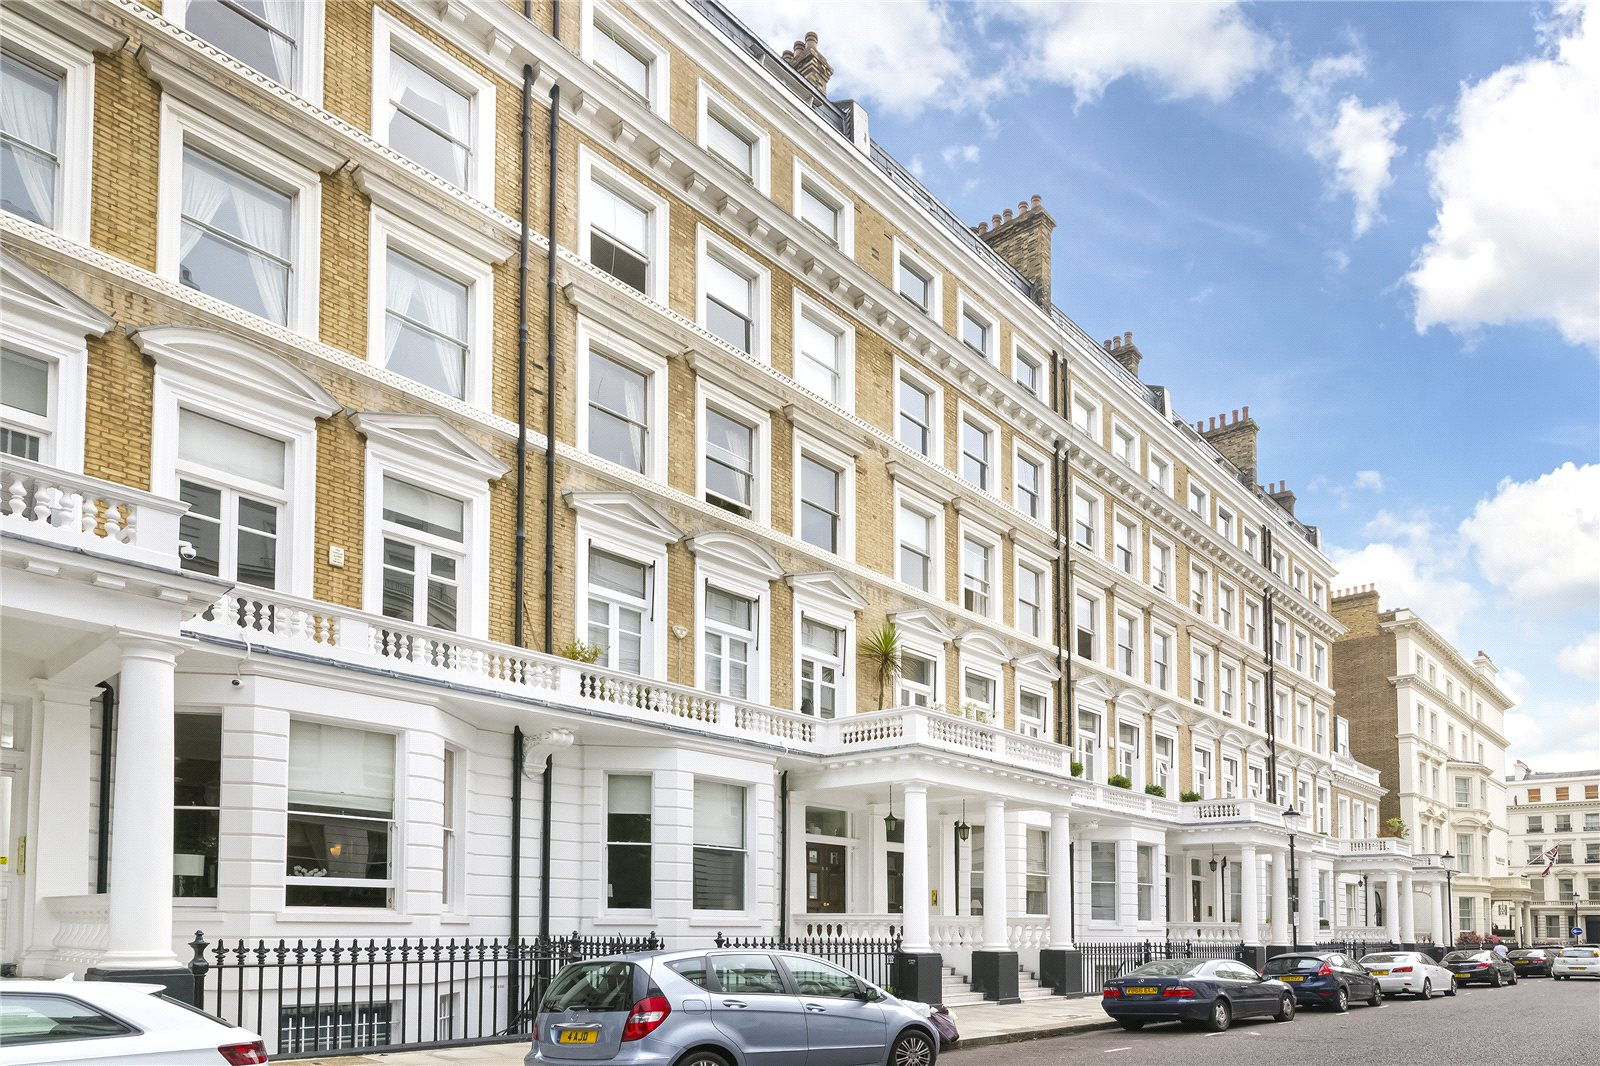 Appartement pour l Vente à Queen's Gate Gardens, South Kensington, London, SW7 South Kensington, London, Angleterre